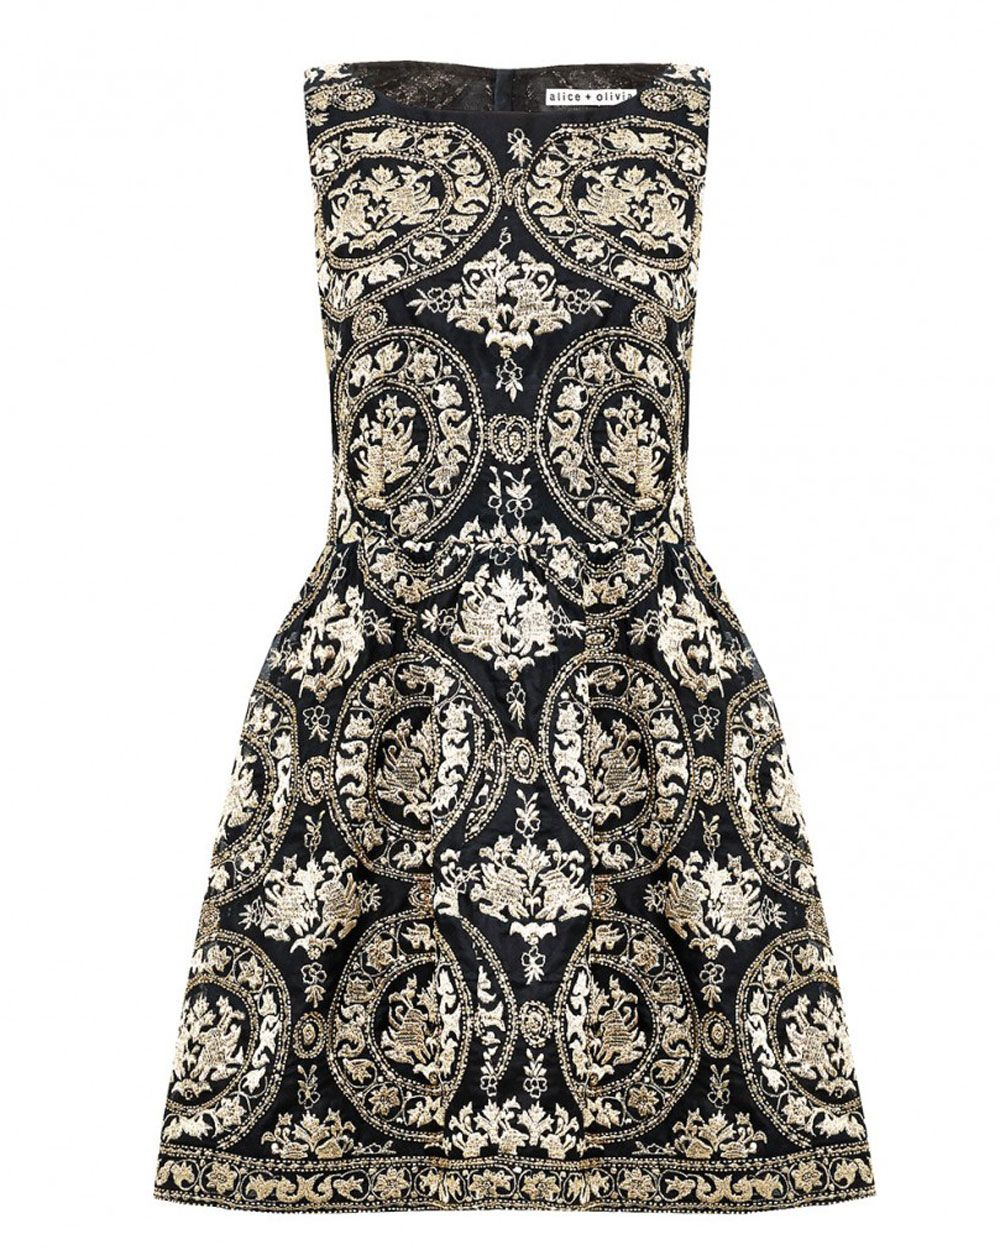 Alice olivia lillyanne embroidered dress purely fashion